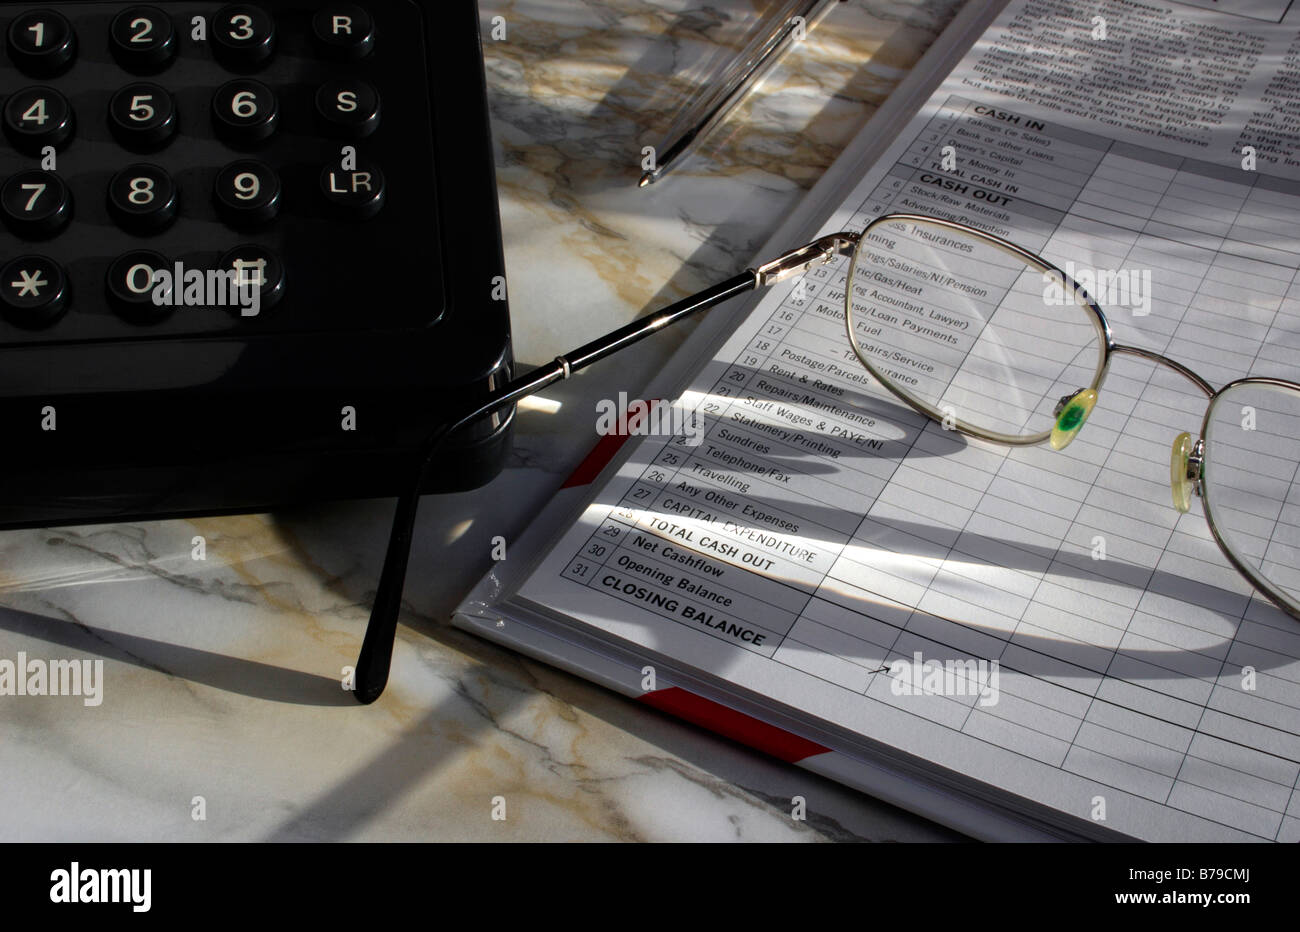 A group of items relating to small business accounting and record keeping. - Stock Image